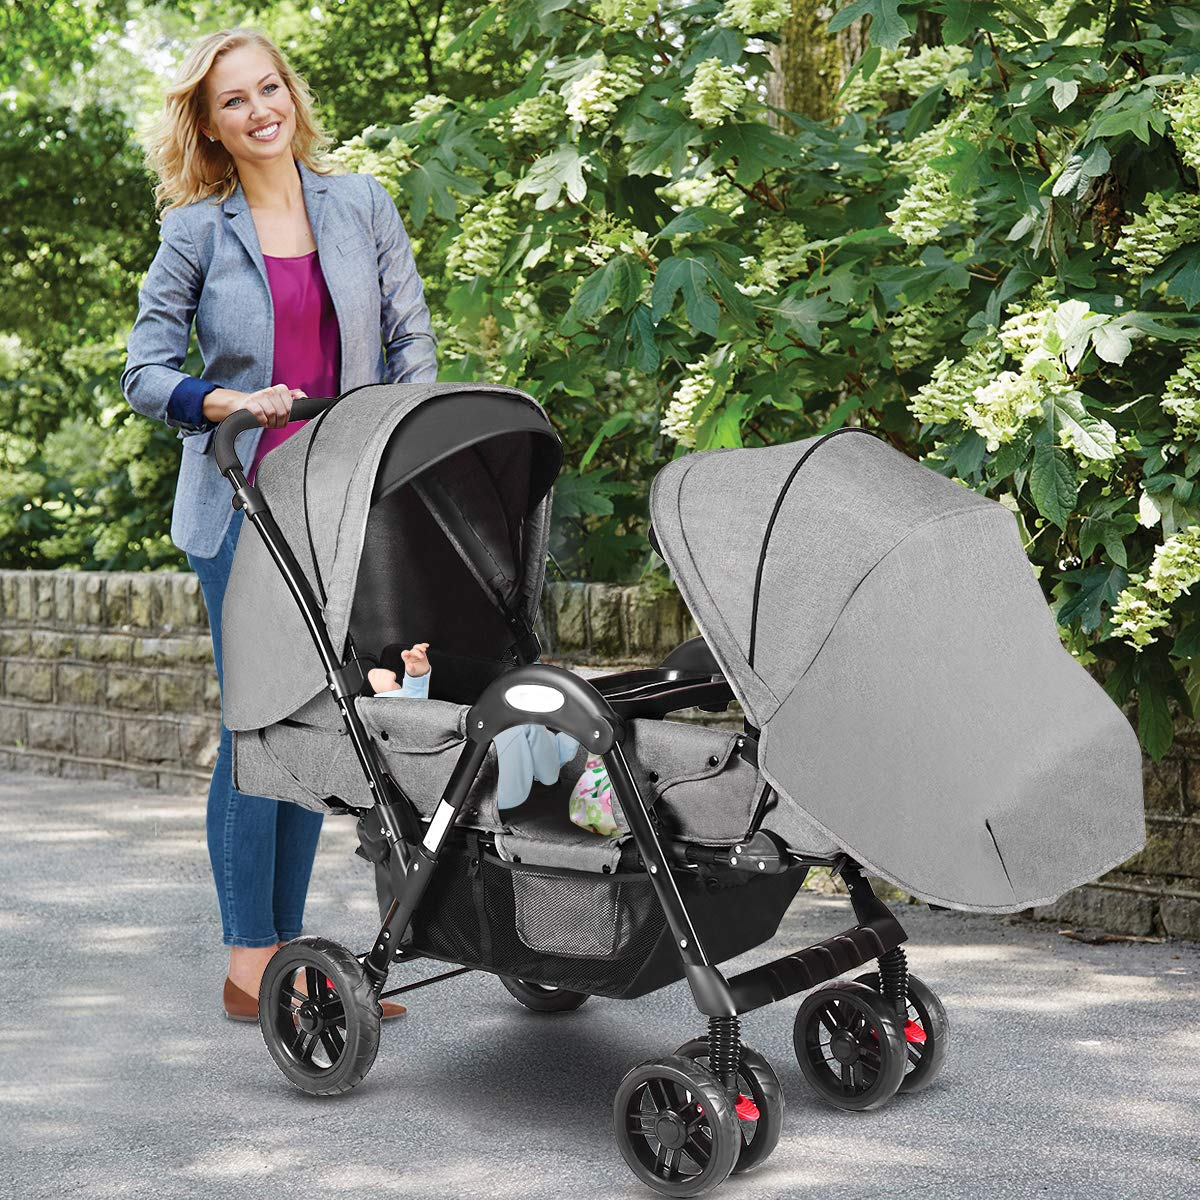 Costzon Double Stroller, Baby Face to Face Carriage with Sleep/Sit/Recline Seat, 5-Point Safety Harness, Detachable Food Tray, Large Storage Space, Gray by Costzon (Image #7)